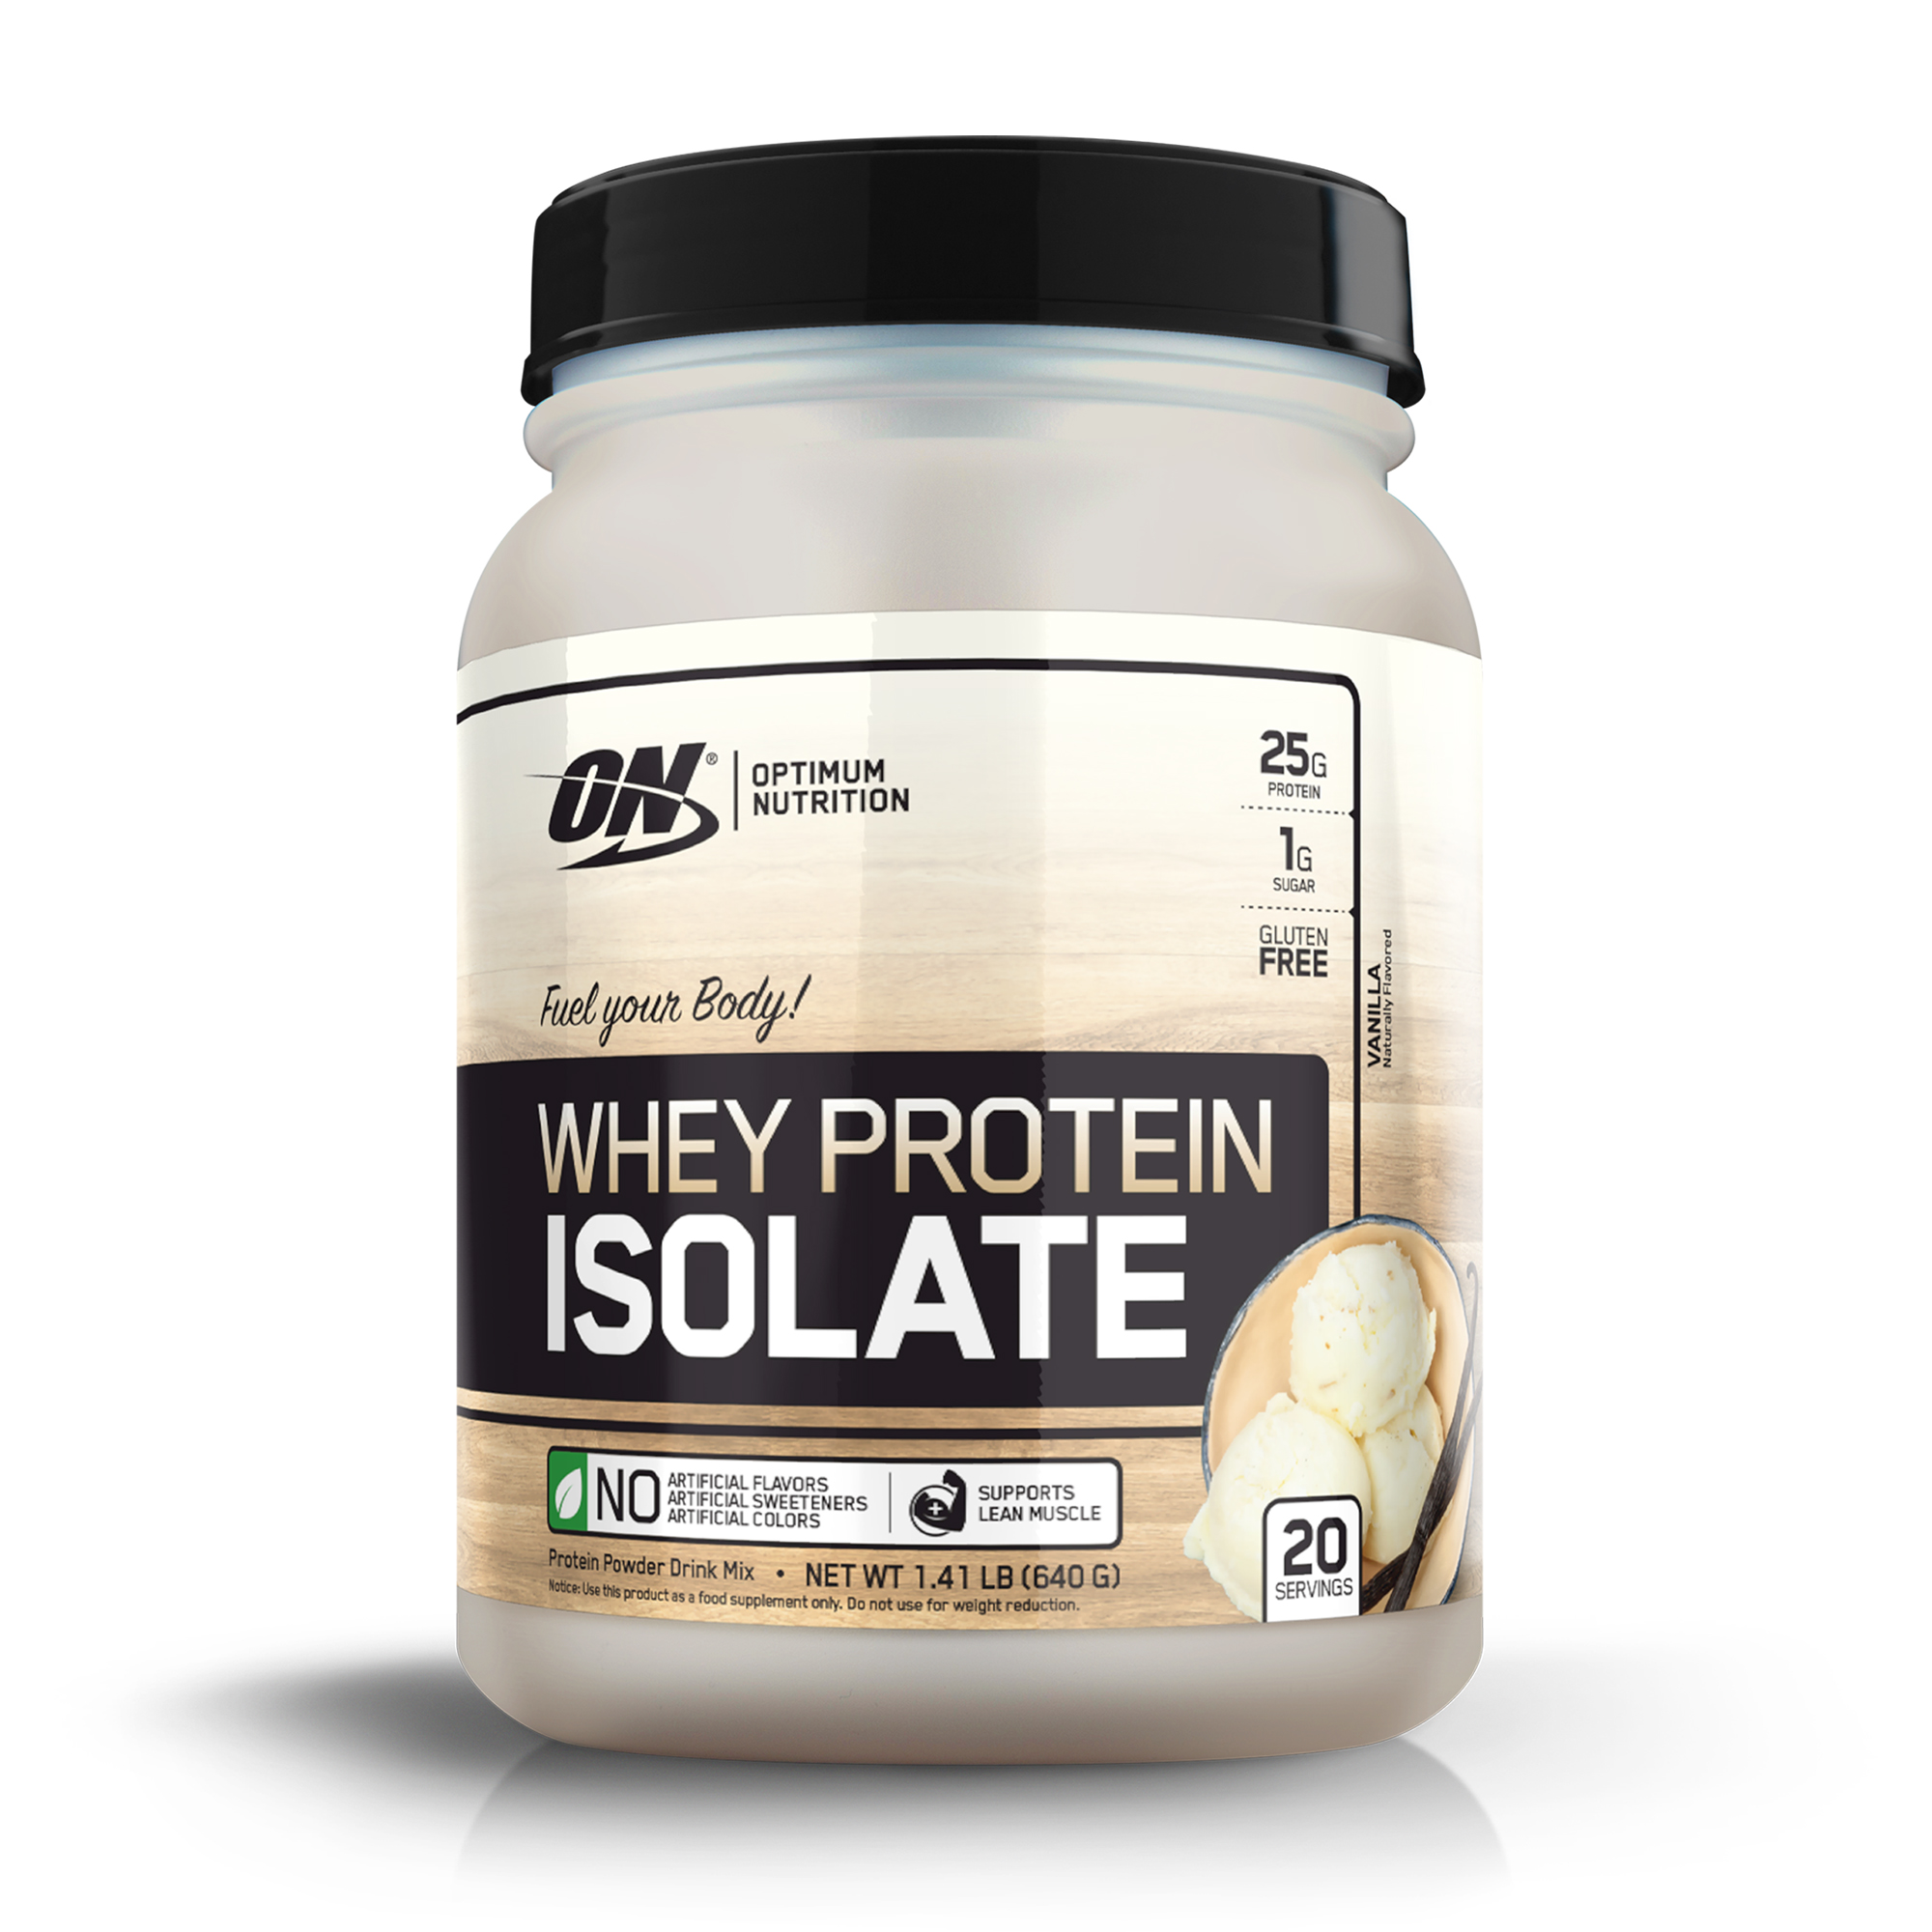 Optimum Nutrition Whey Protein Isolate, Vanilla, 25g Protein, 1.41 Lb